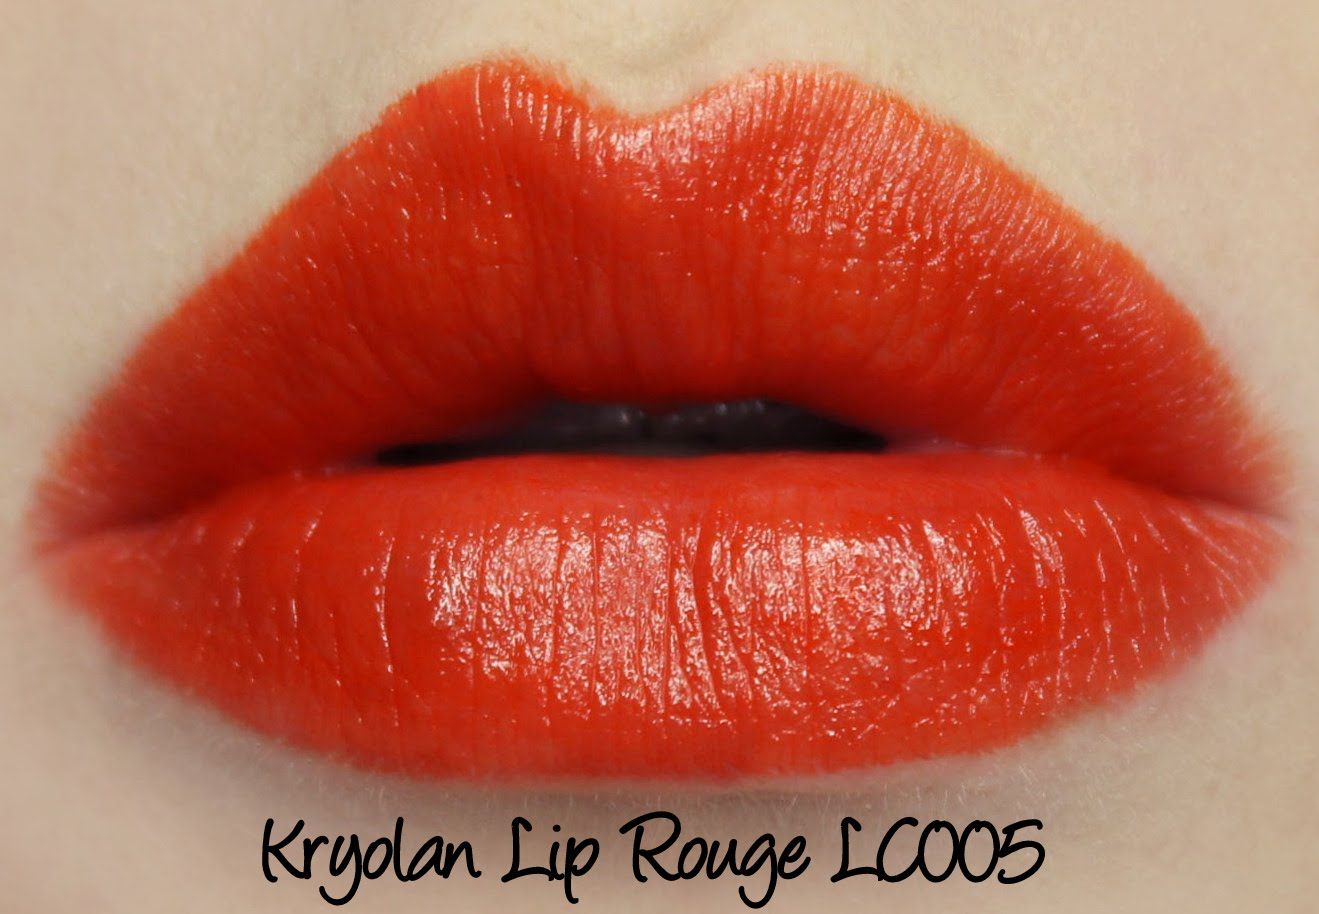 Kryolan Lip Rouge Classic Lipstick LC005 Swatches & Review